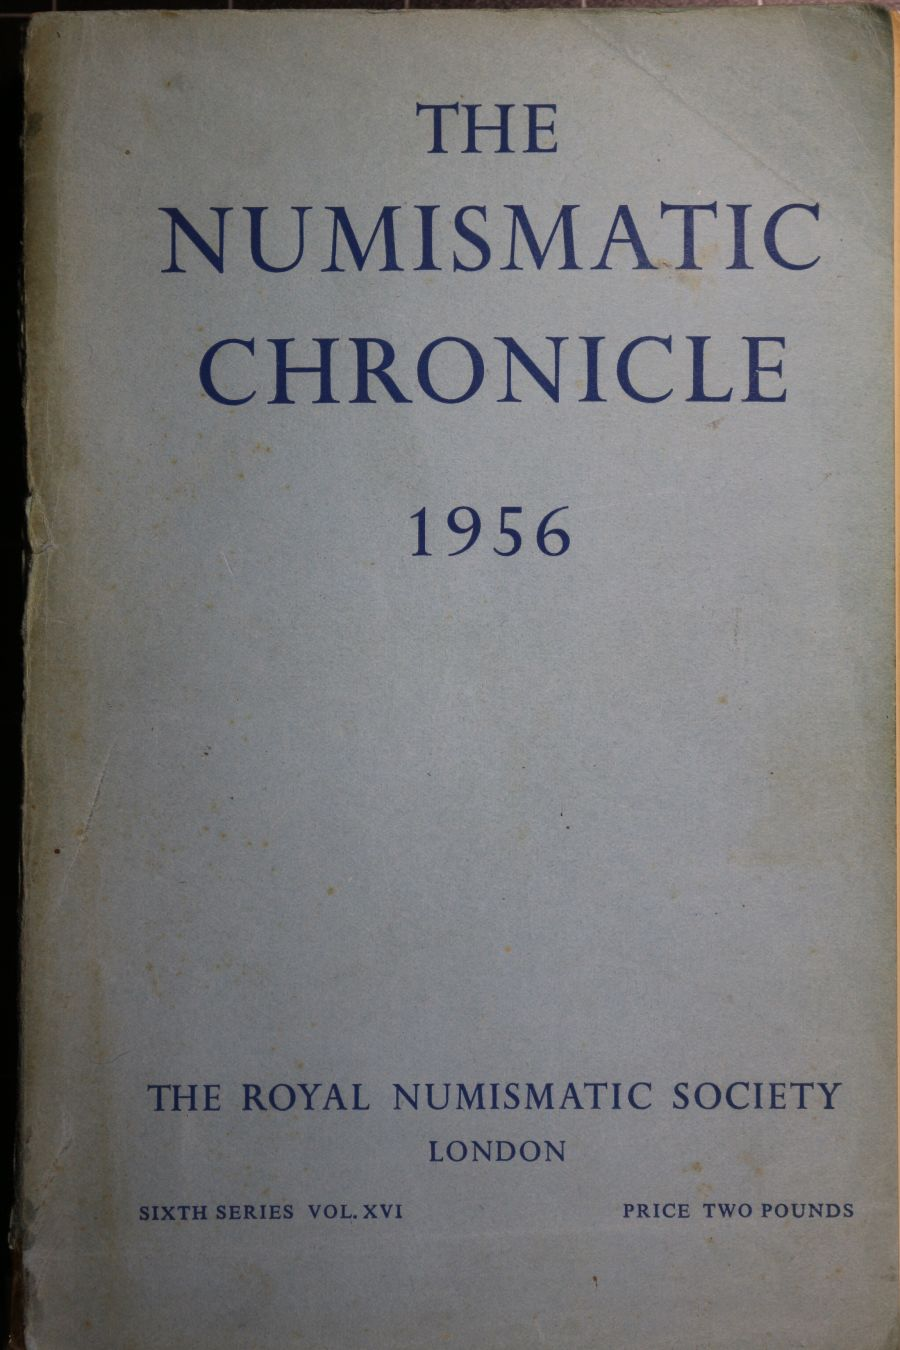 The Numismatic Chronicle 1956